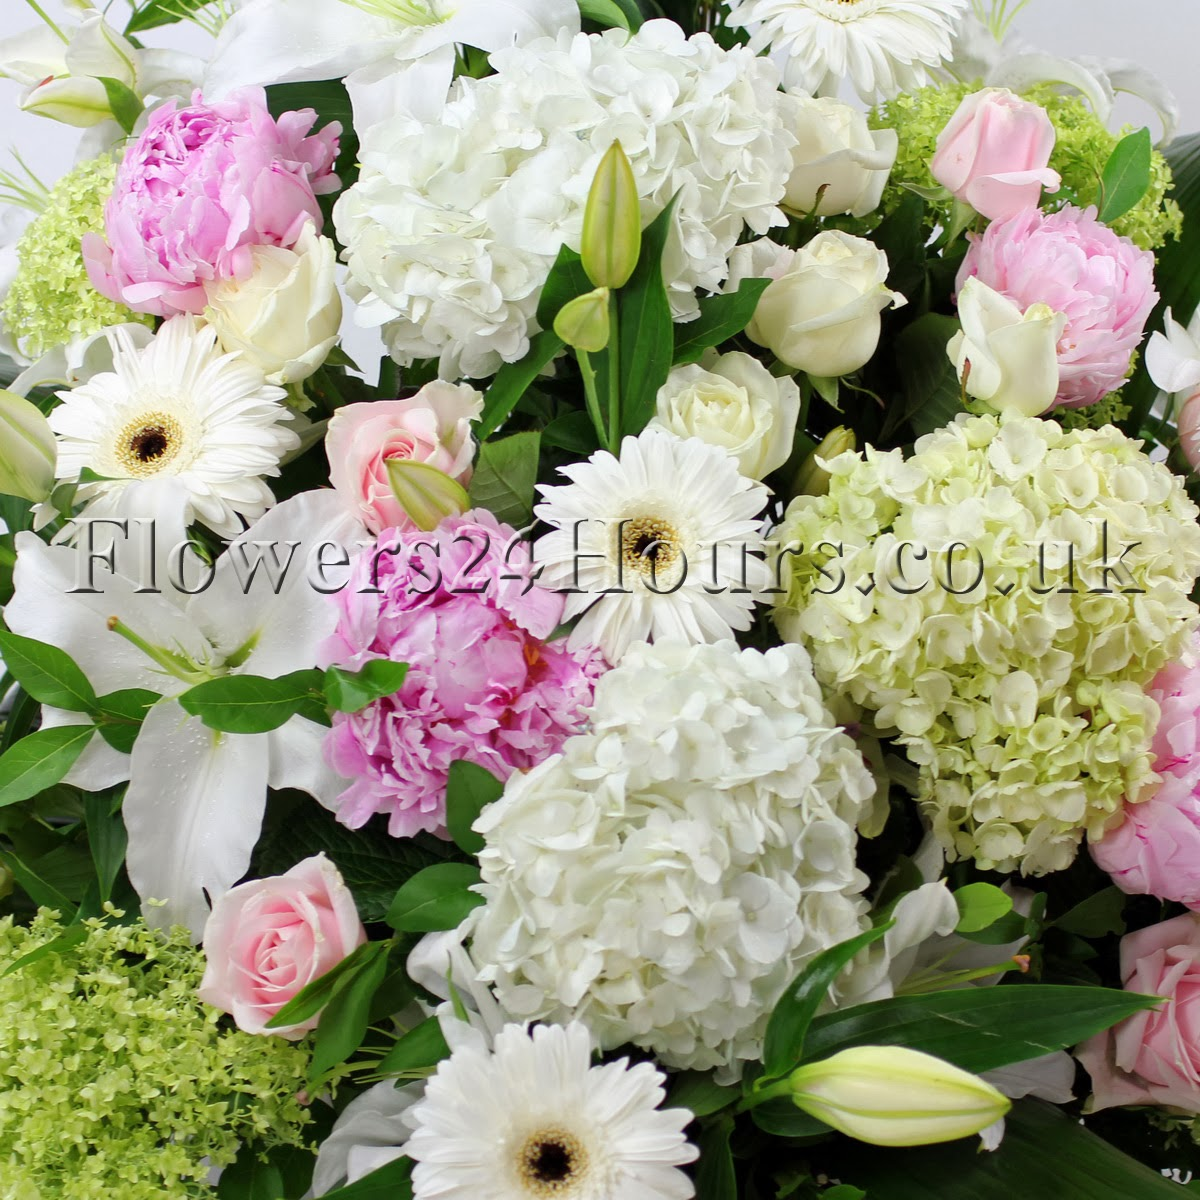 Send flowers to london same day gift delivery london uk birthday bliss izmirmasajfo